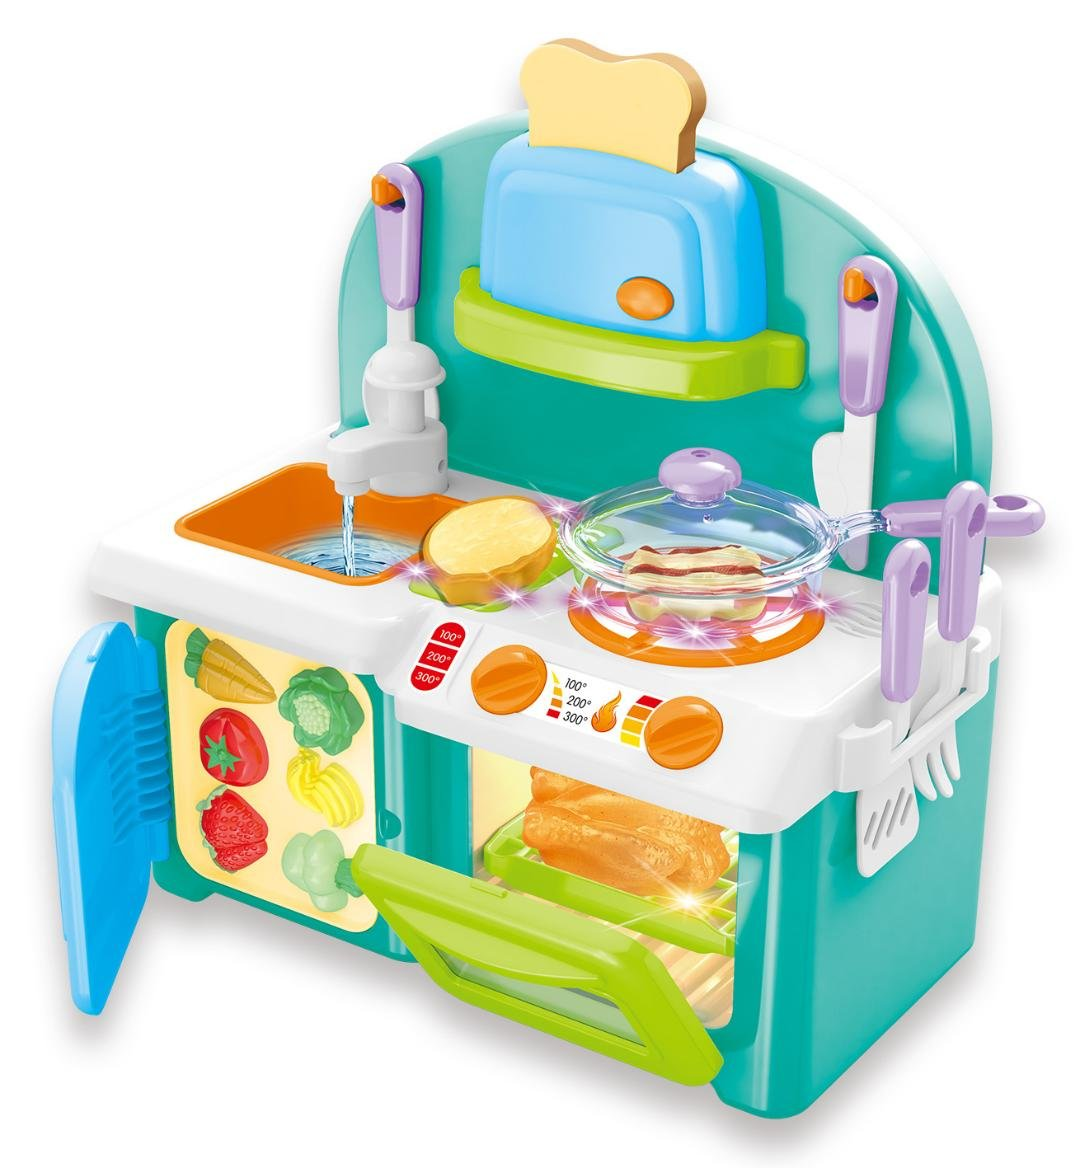 Buy ampersand shops mini chef kitchen cooking play set with lights and sound online at low prices in india amazon in